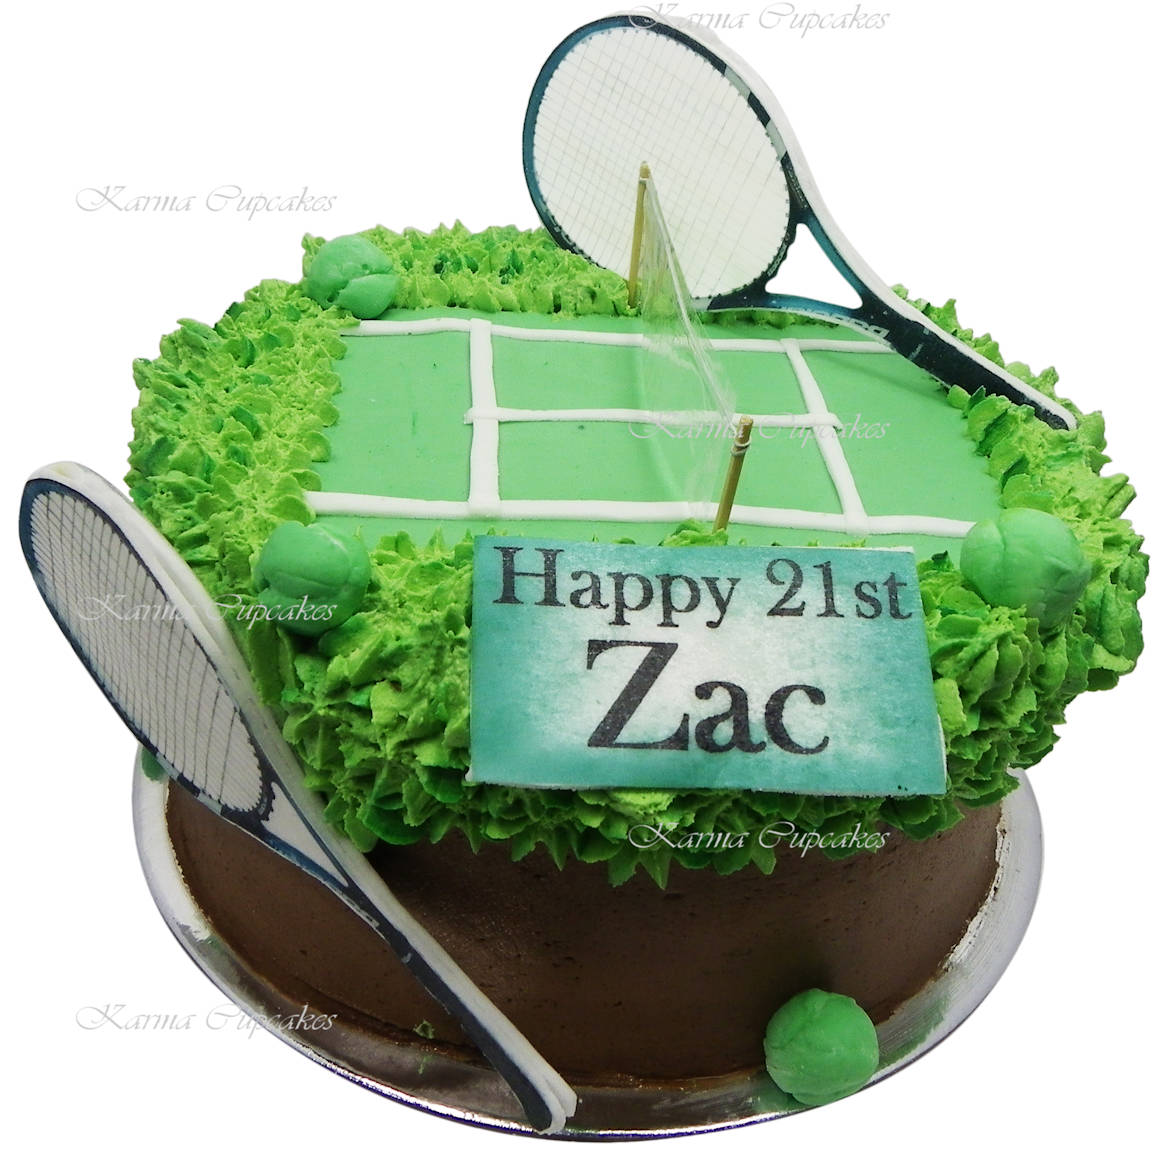 Tennis Court birthday cake with edible ball and rackets copy